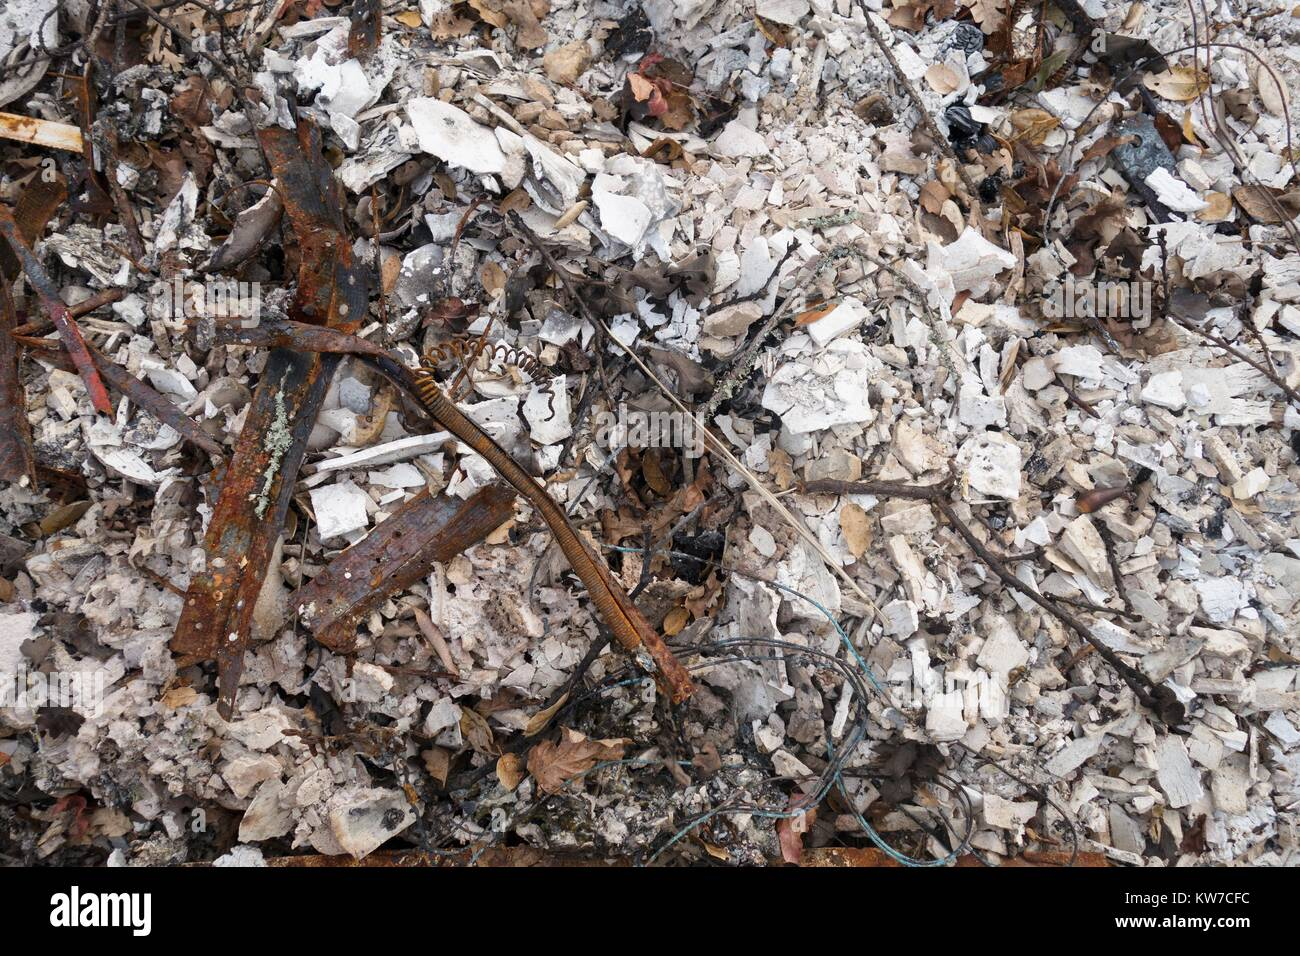 A pile of ash and rubble from a house, among the damage from the Tubbs wildfire in Santa Rosa, California, USA. Stock Photo